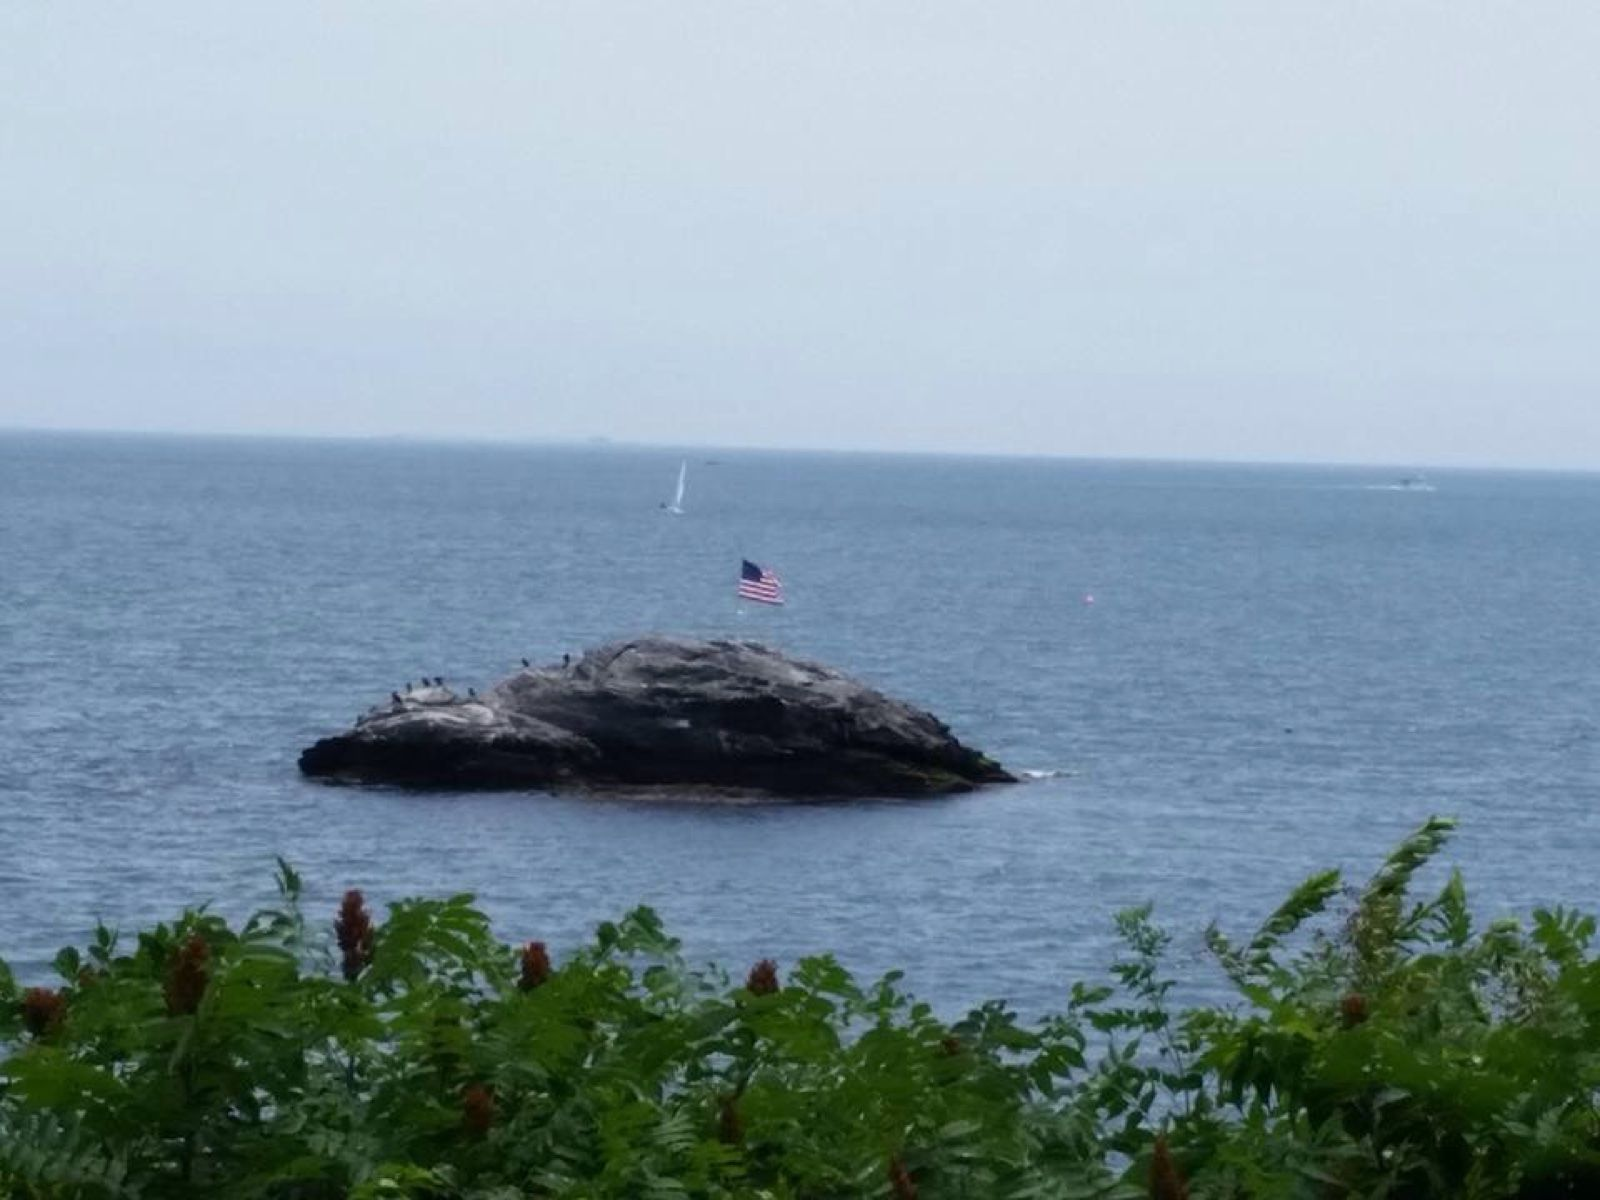 Manwaring flag on wigwam rock crescent beach ct july 2016 manwaring flag on wigwam rock crescent beach ct july 2016 sciox Choice Image